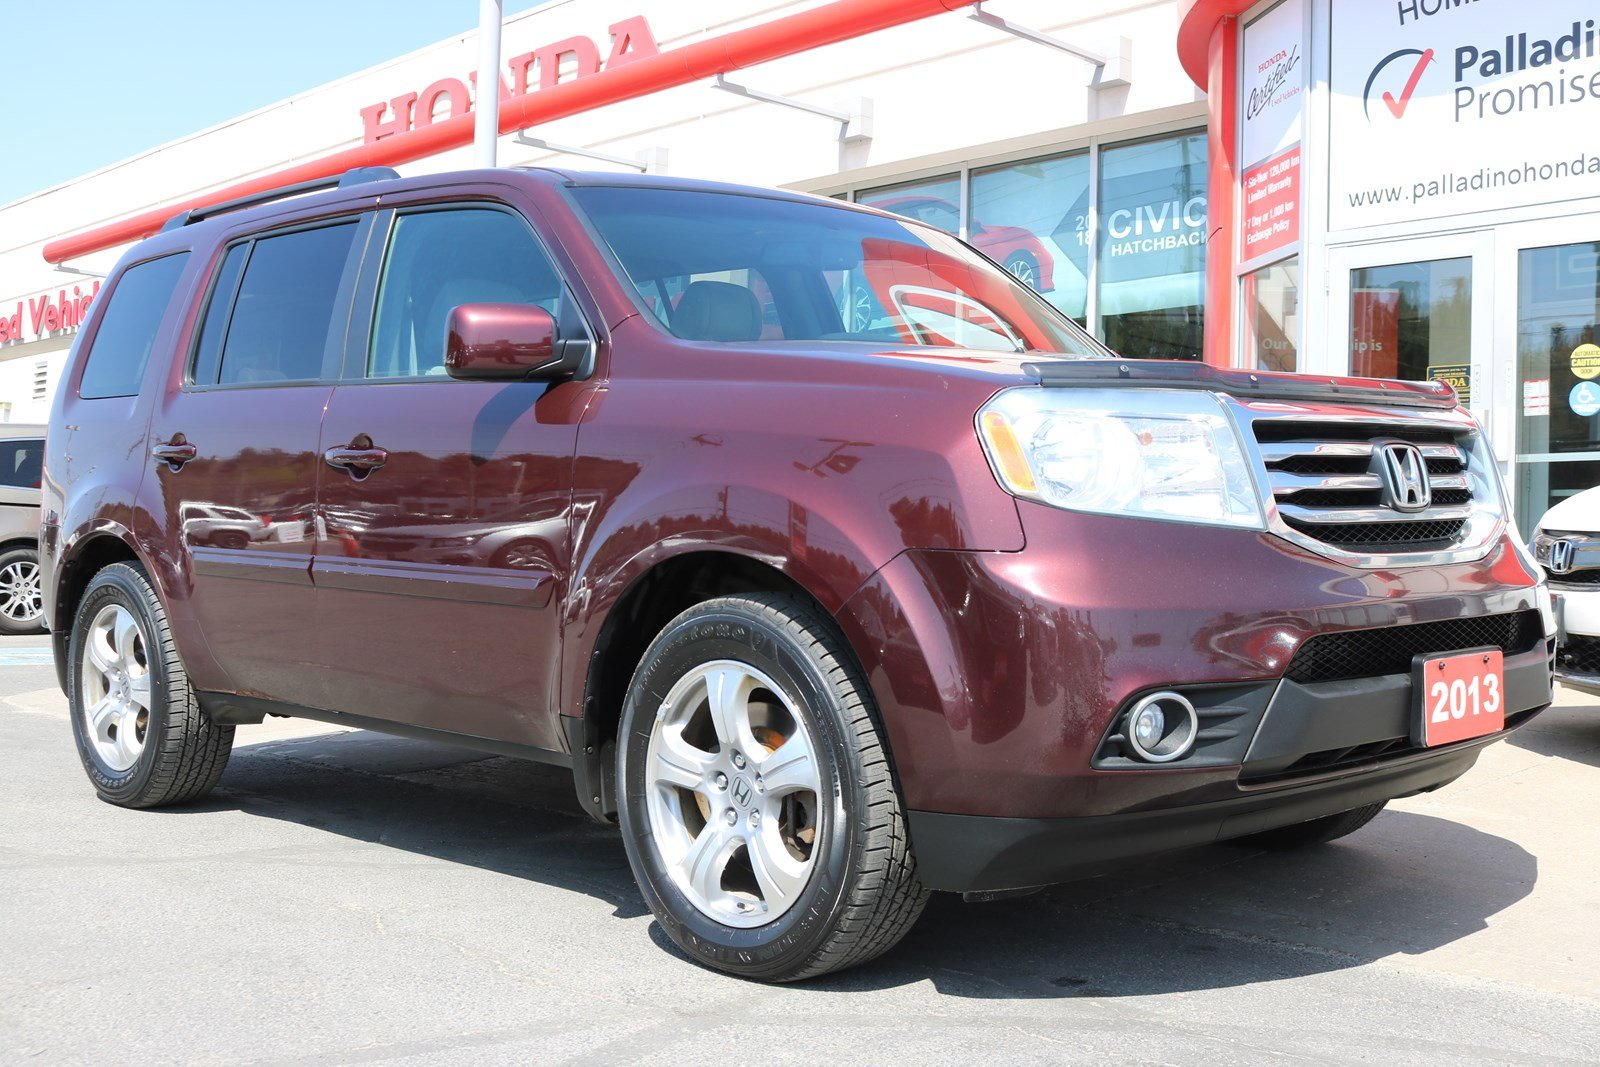 Pre Owned 2013 Honda Pilot EX L   NEW BRAKES ALL ROUND, NEW